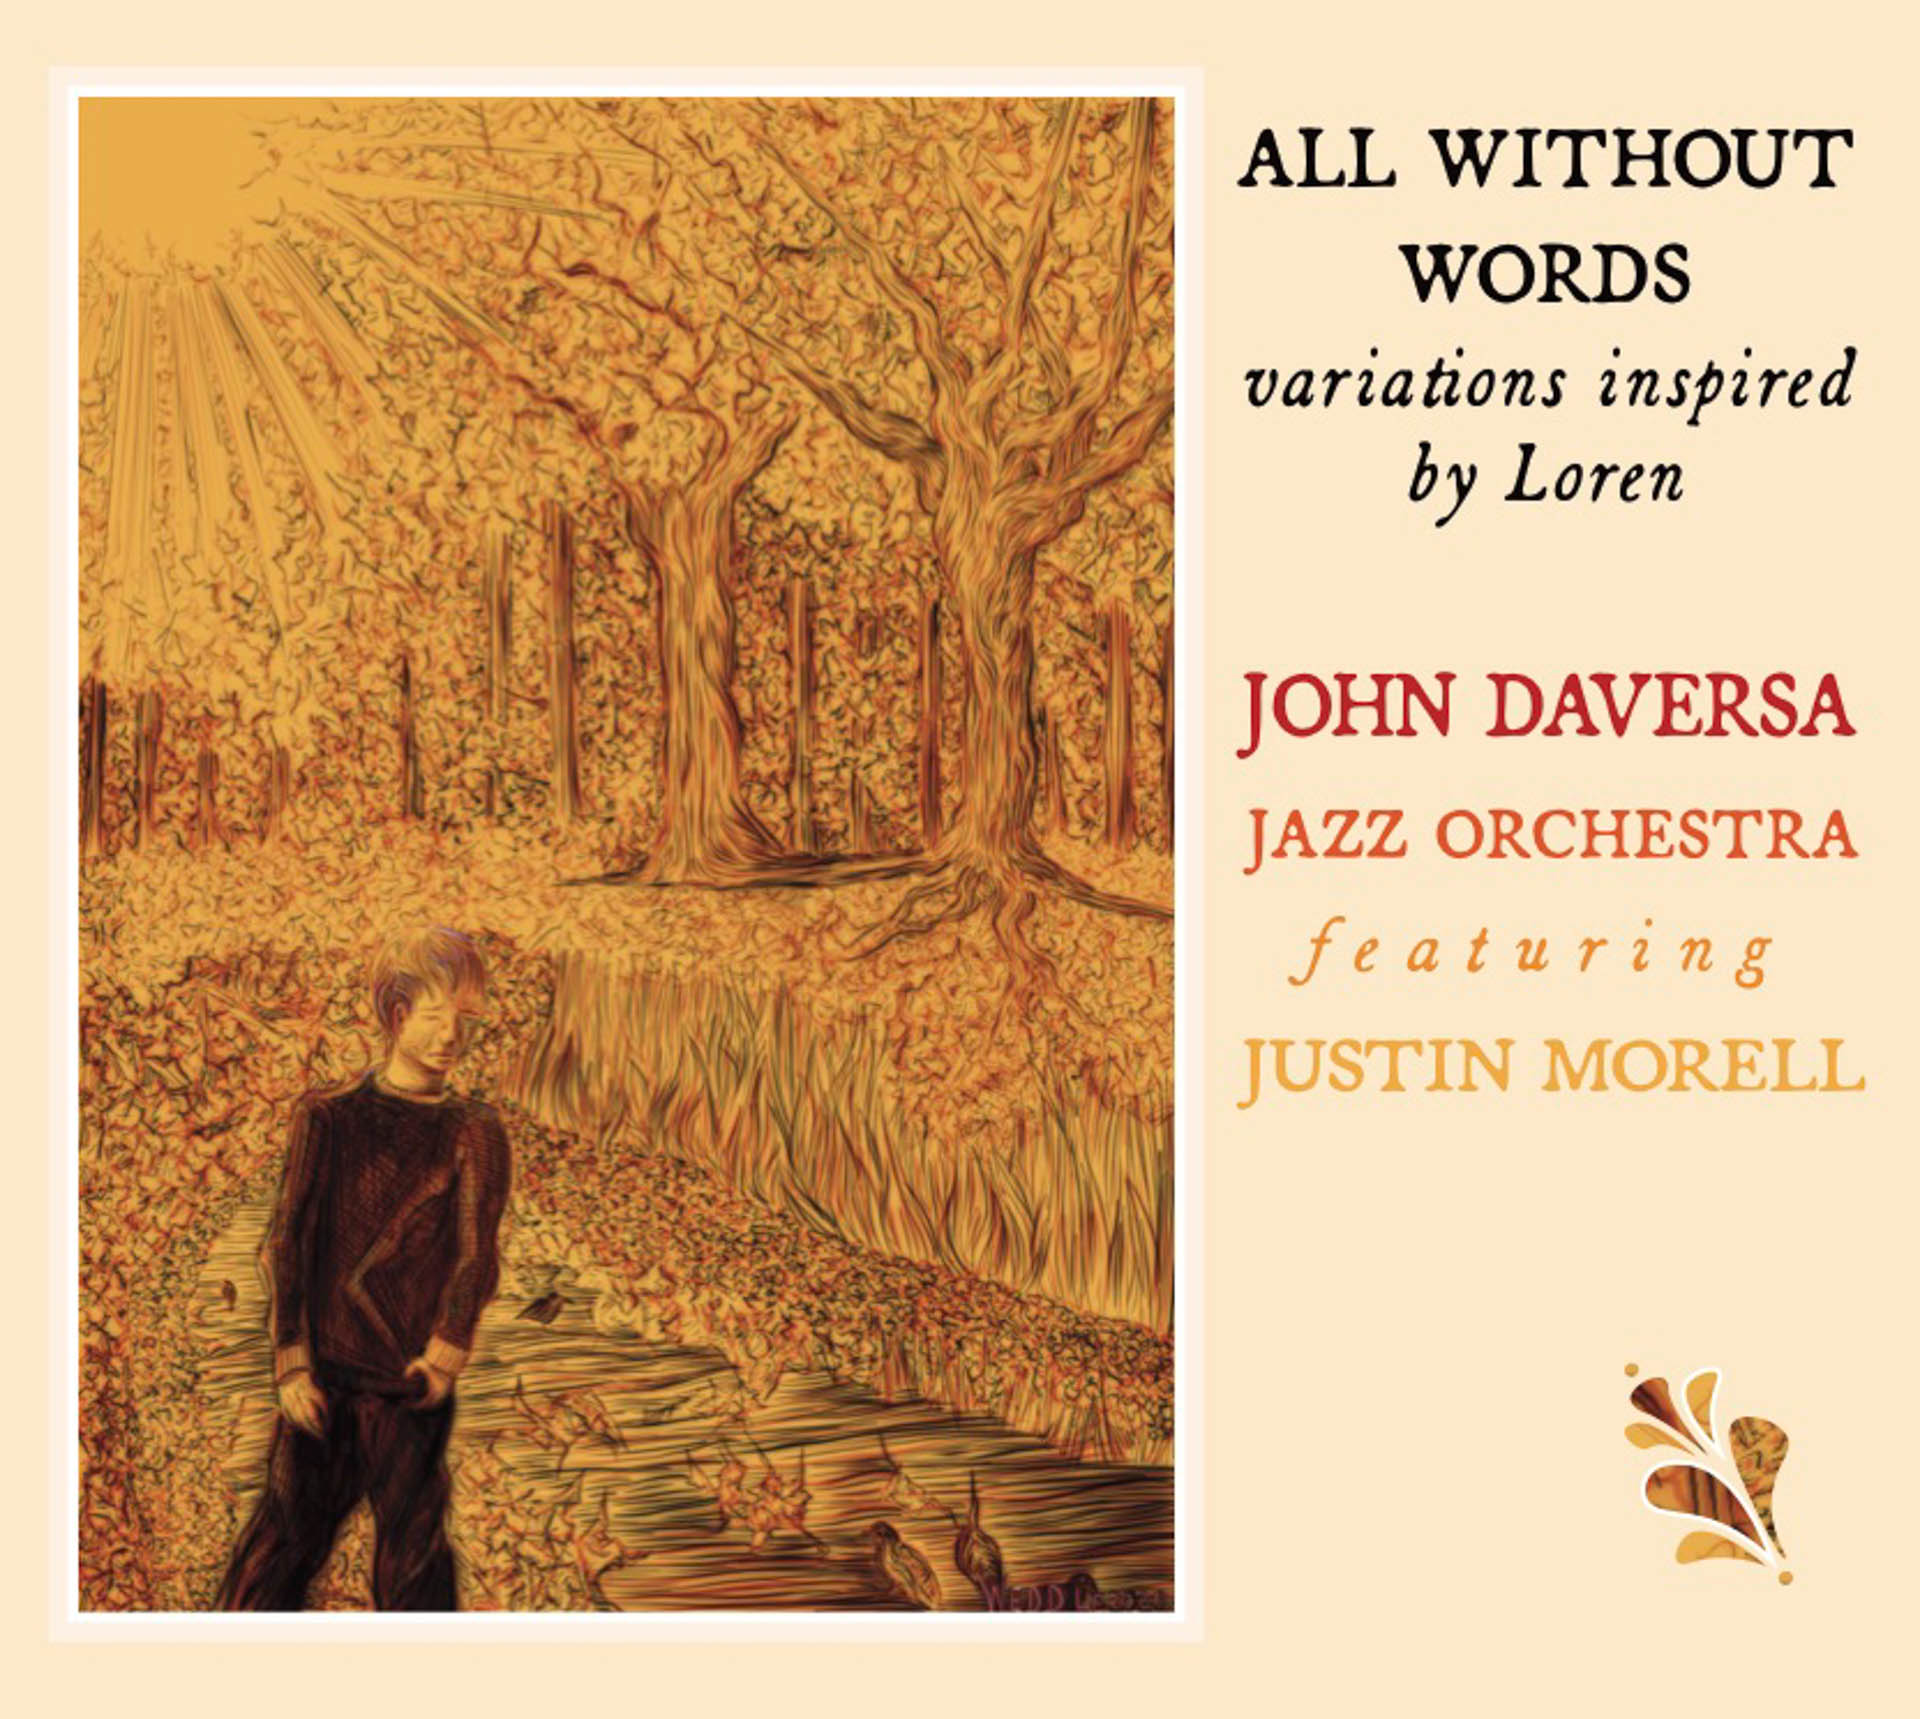 The cover art for All Without Words. A painting of a boy walking in the woods.